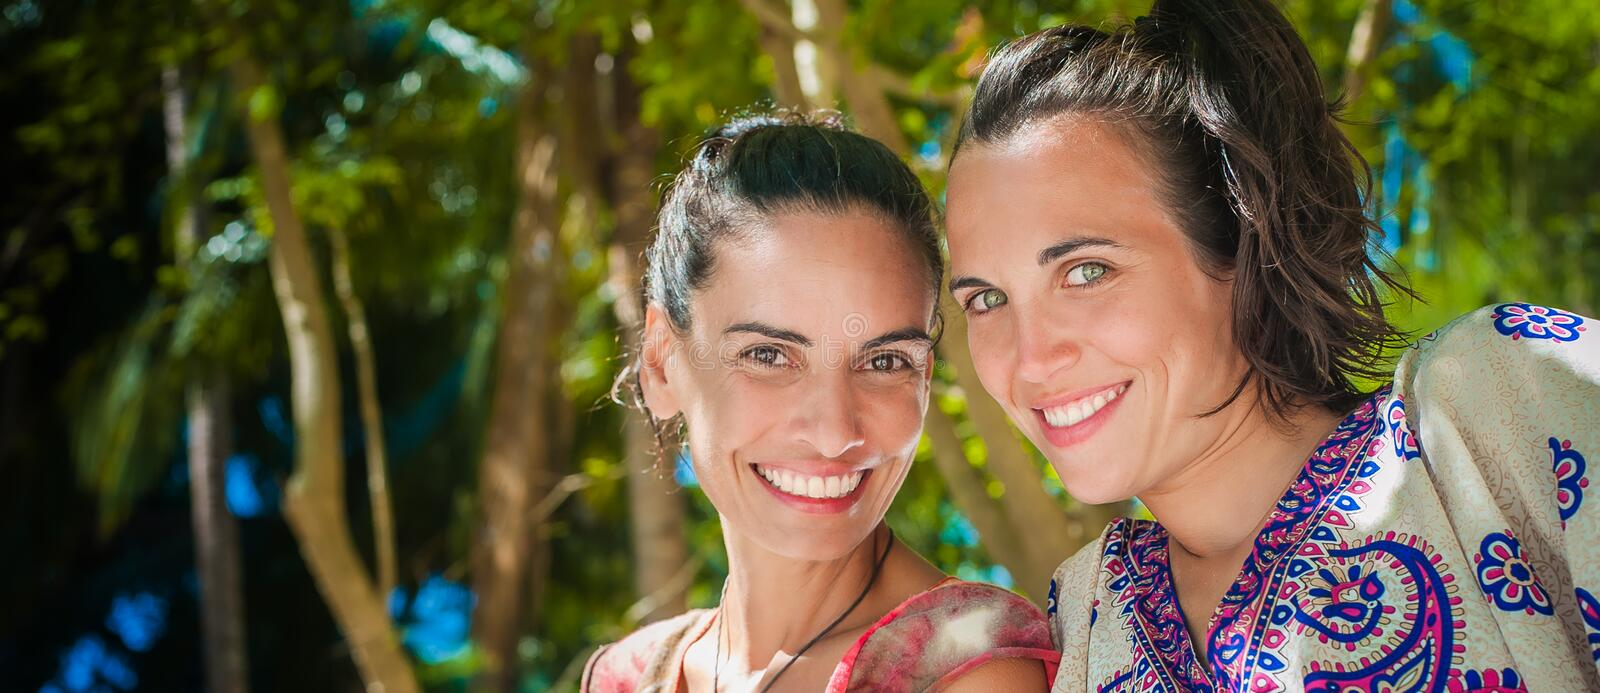 Two happy girlfriends smiling and enjoying on the beach royalty free stock photography